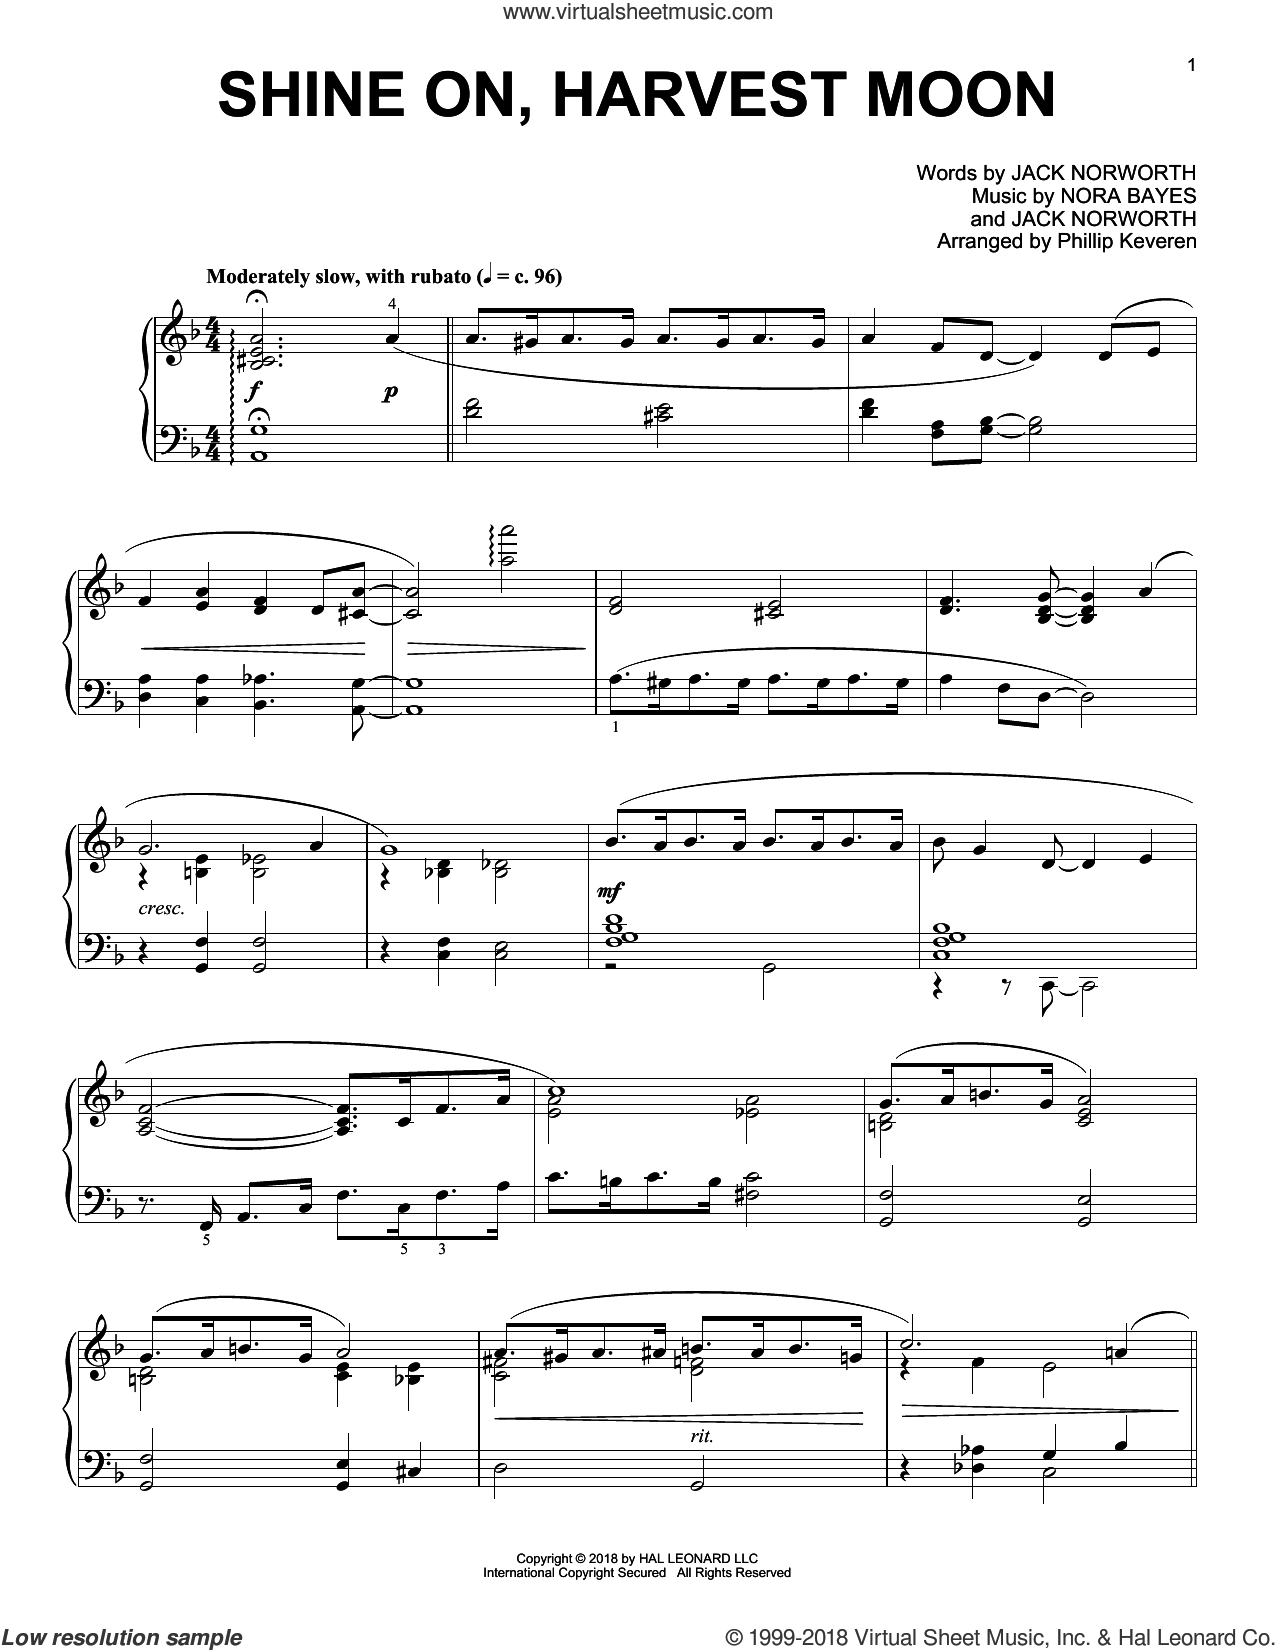 Shine On, Harvest Moon [Jazz version] (arr. Phillip Keveren) sheet music for piano solo by Jack Norworth, Phillip Keveren and Nora Bayes, intermediate skill level